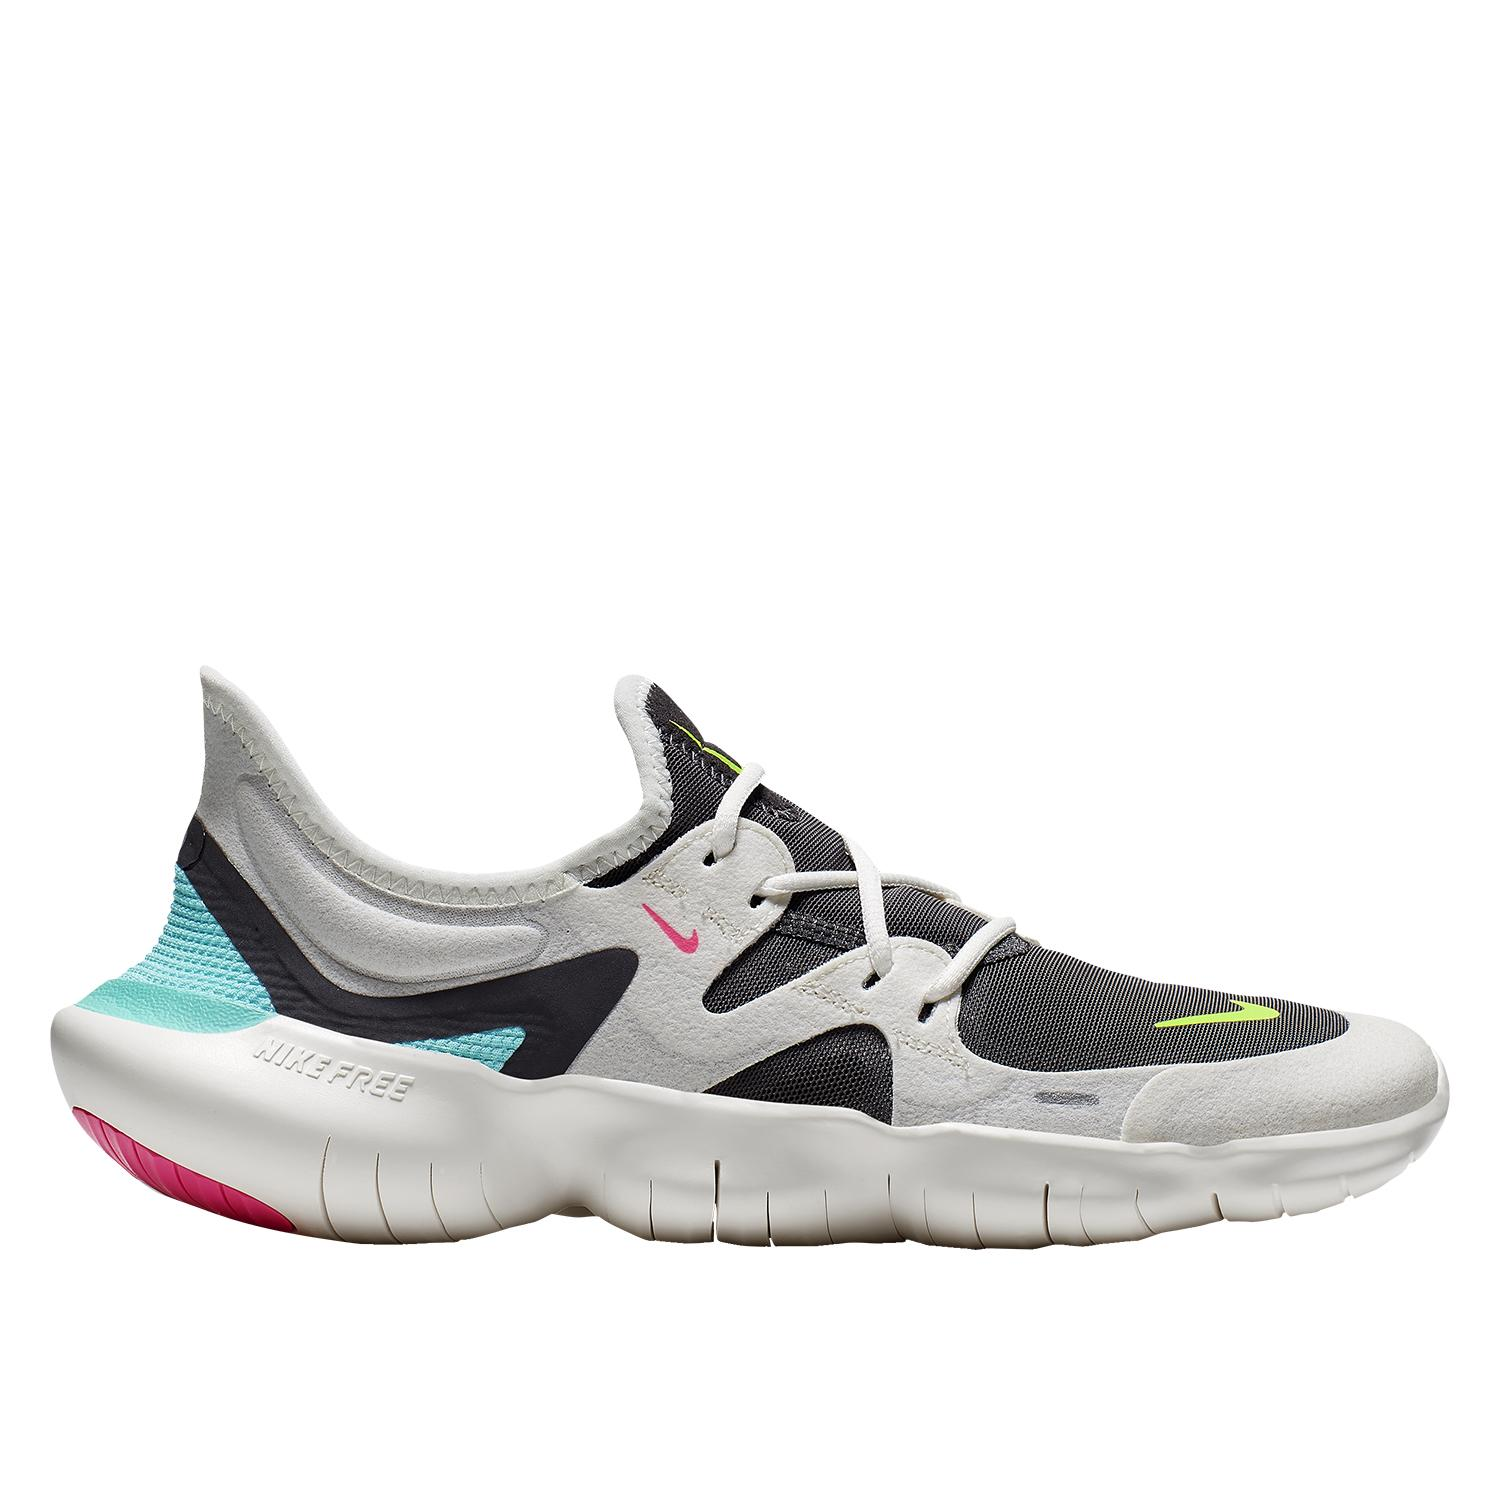 new arrival 00612 52a87 Nike Free RN 5.0 Women's Running Shoe